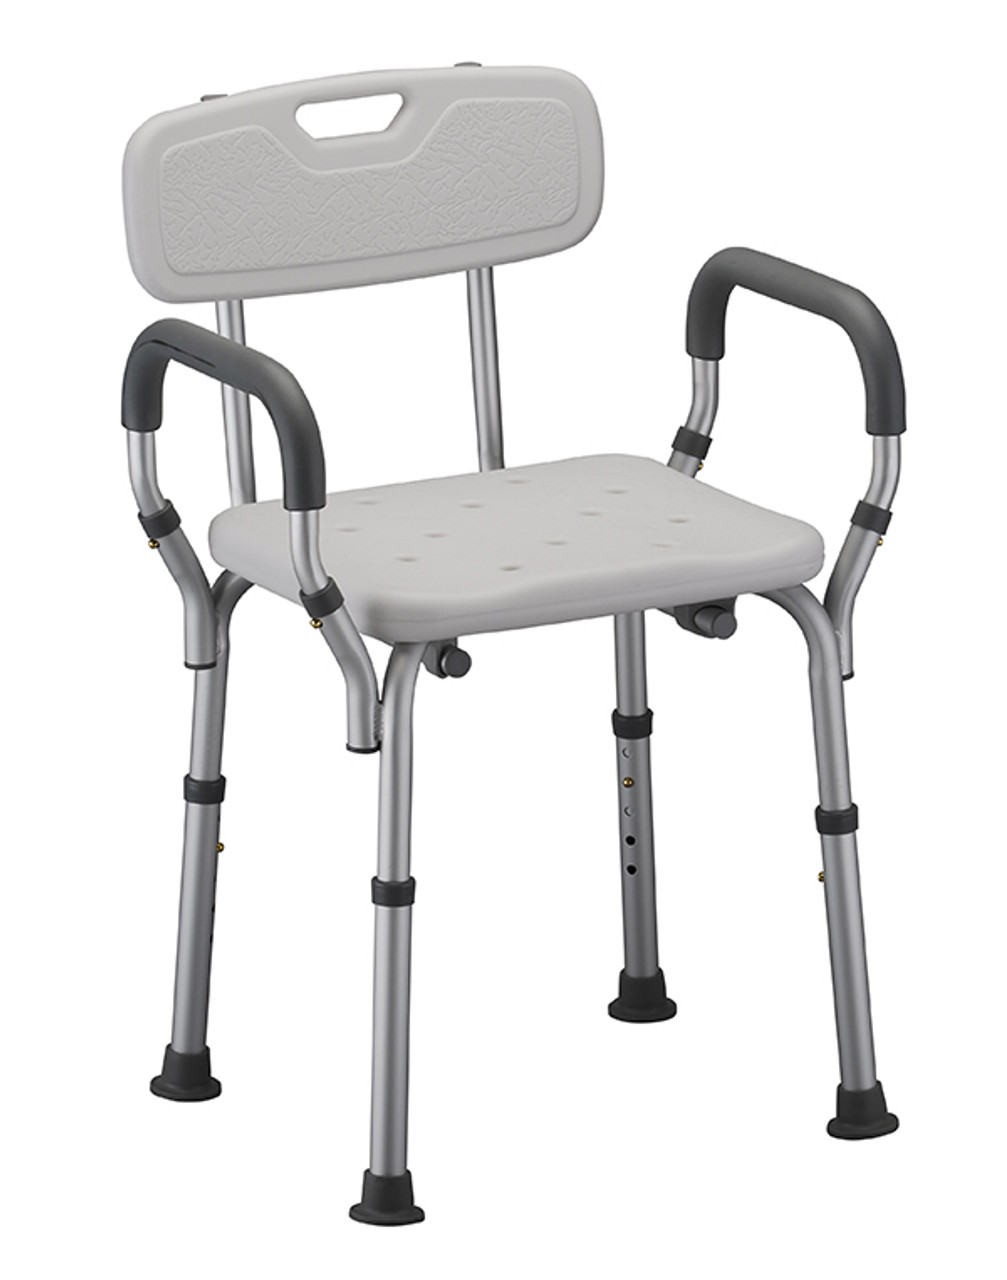 Shower Seat with Back and Arms